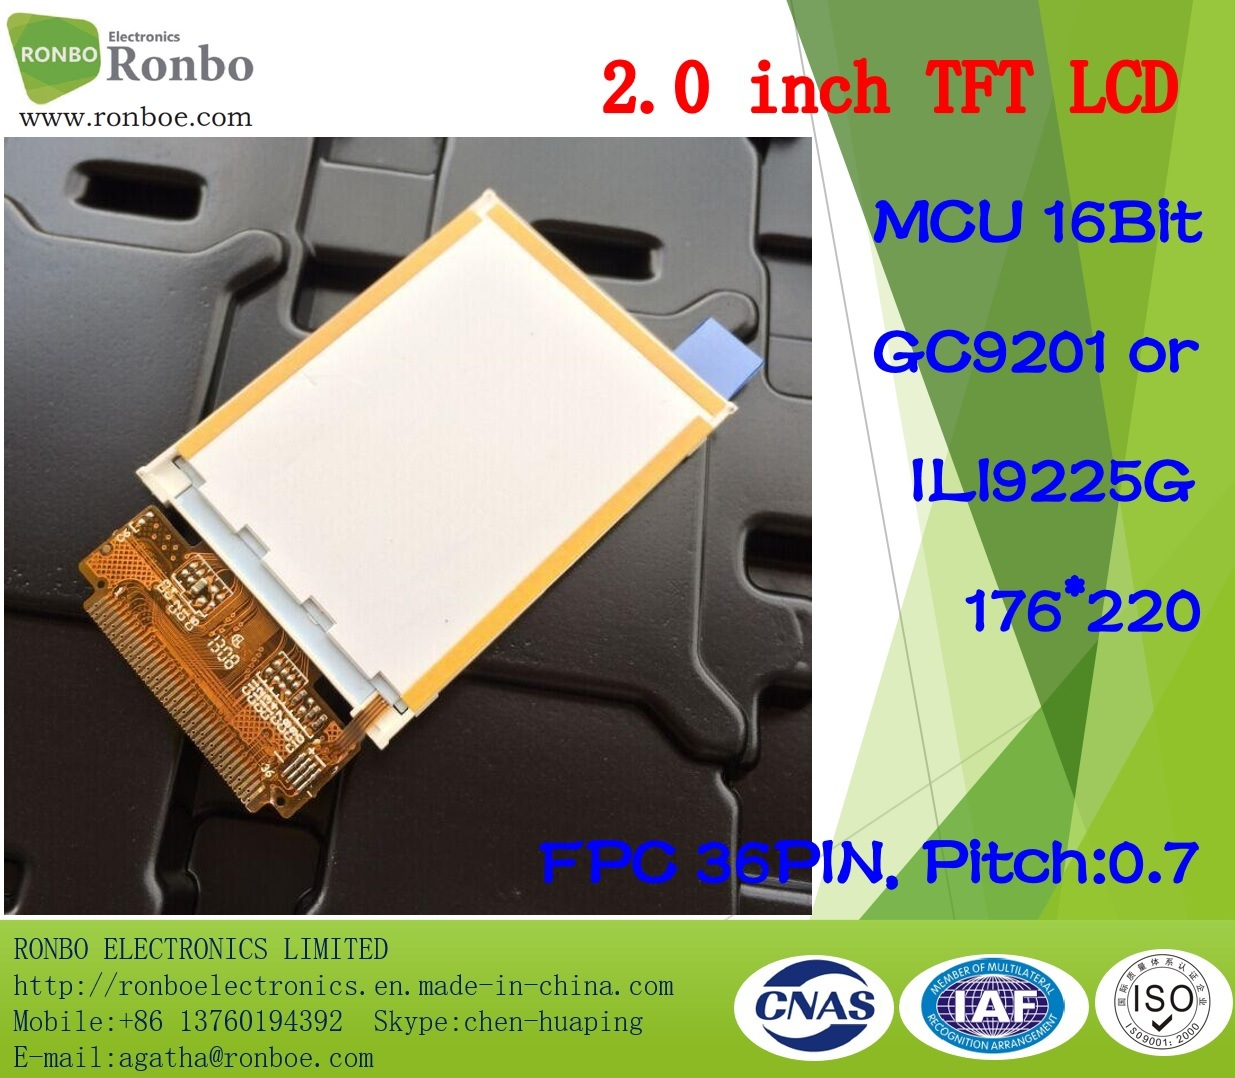 2.0 Inch 176*220 MCU 16bit 36pin TFT LCD Panel, Option Touch Screen pictures & photos